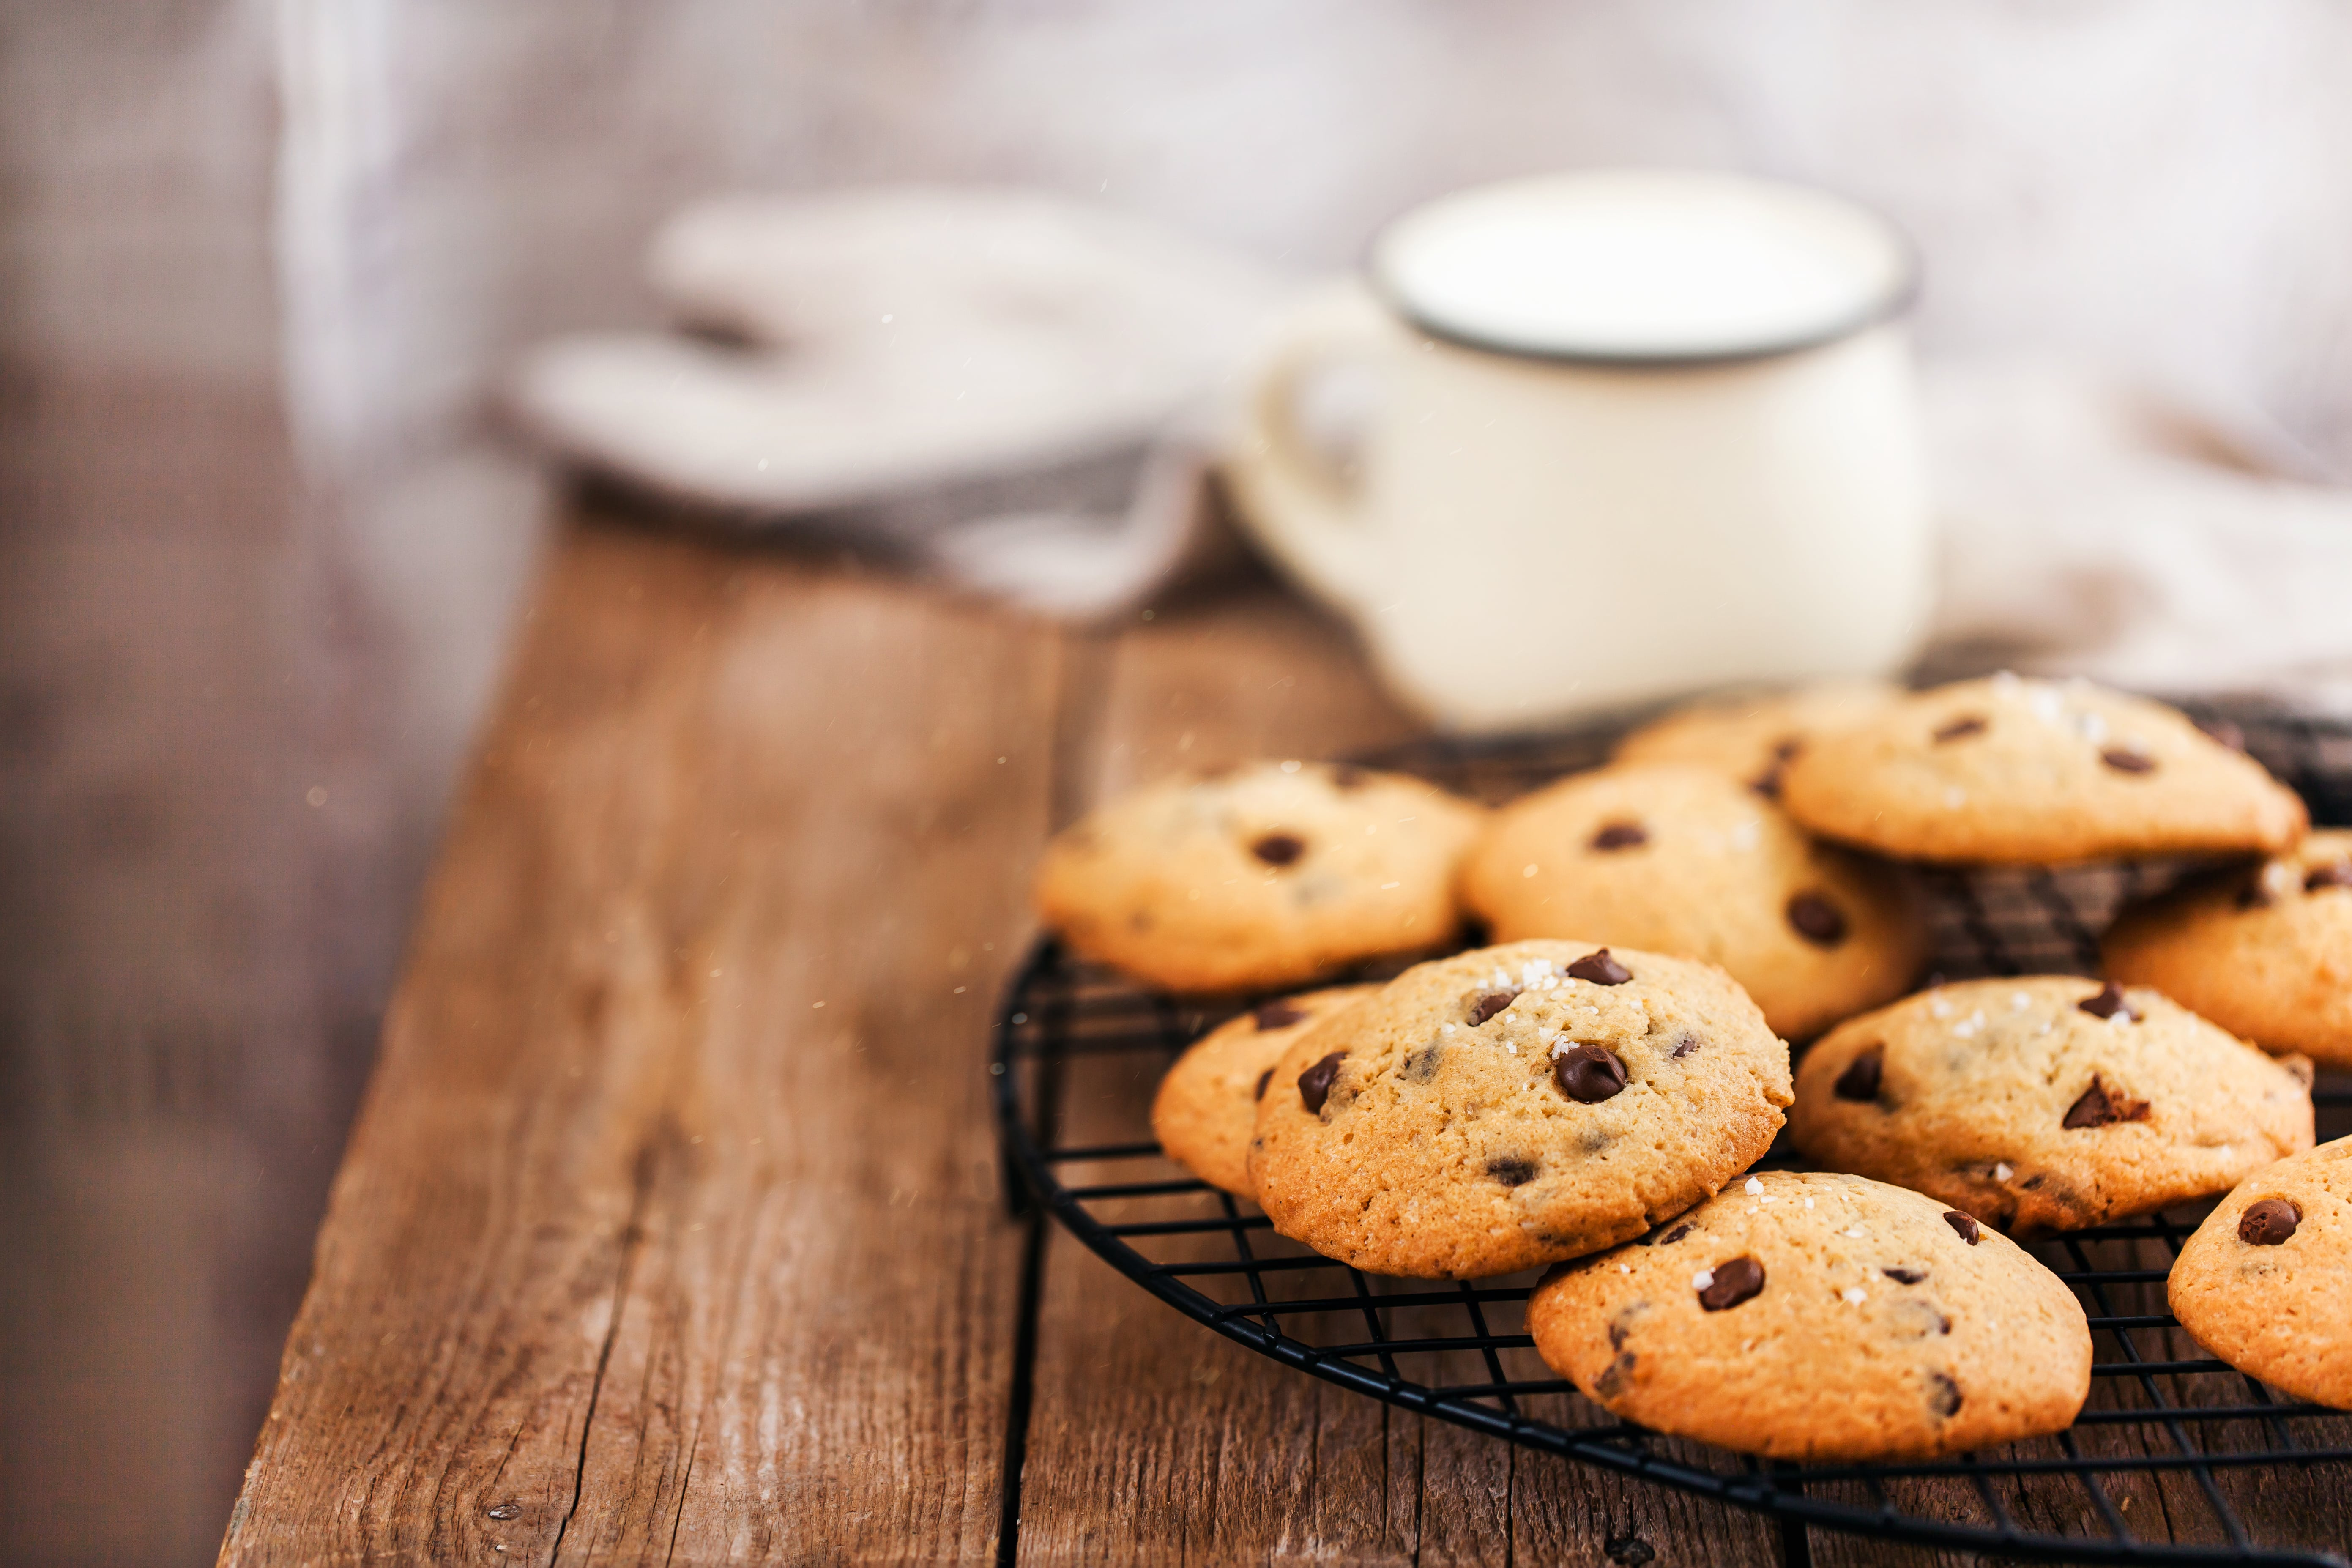 Homemade Freshly Baked Chocolate Chip Cookies